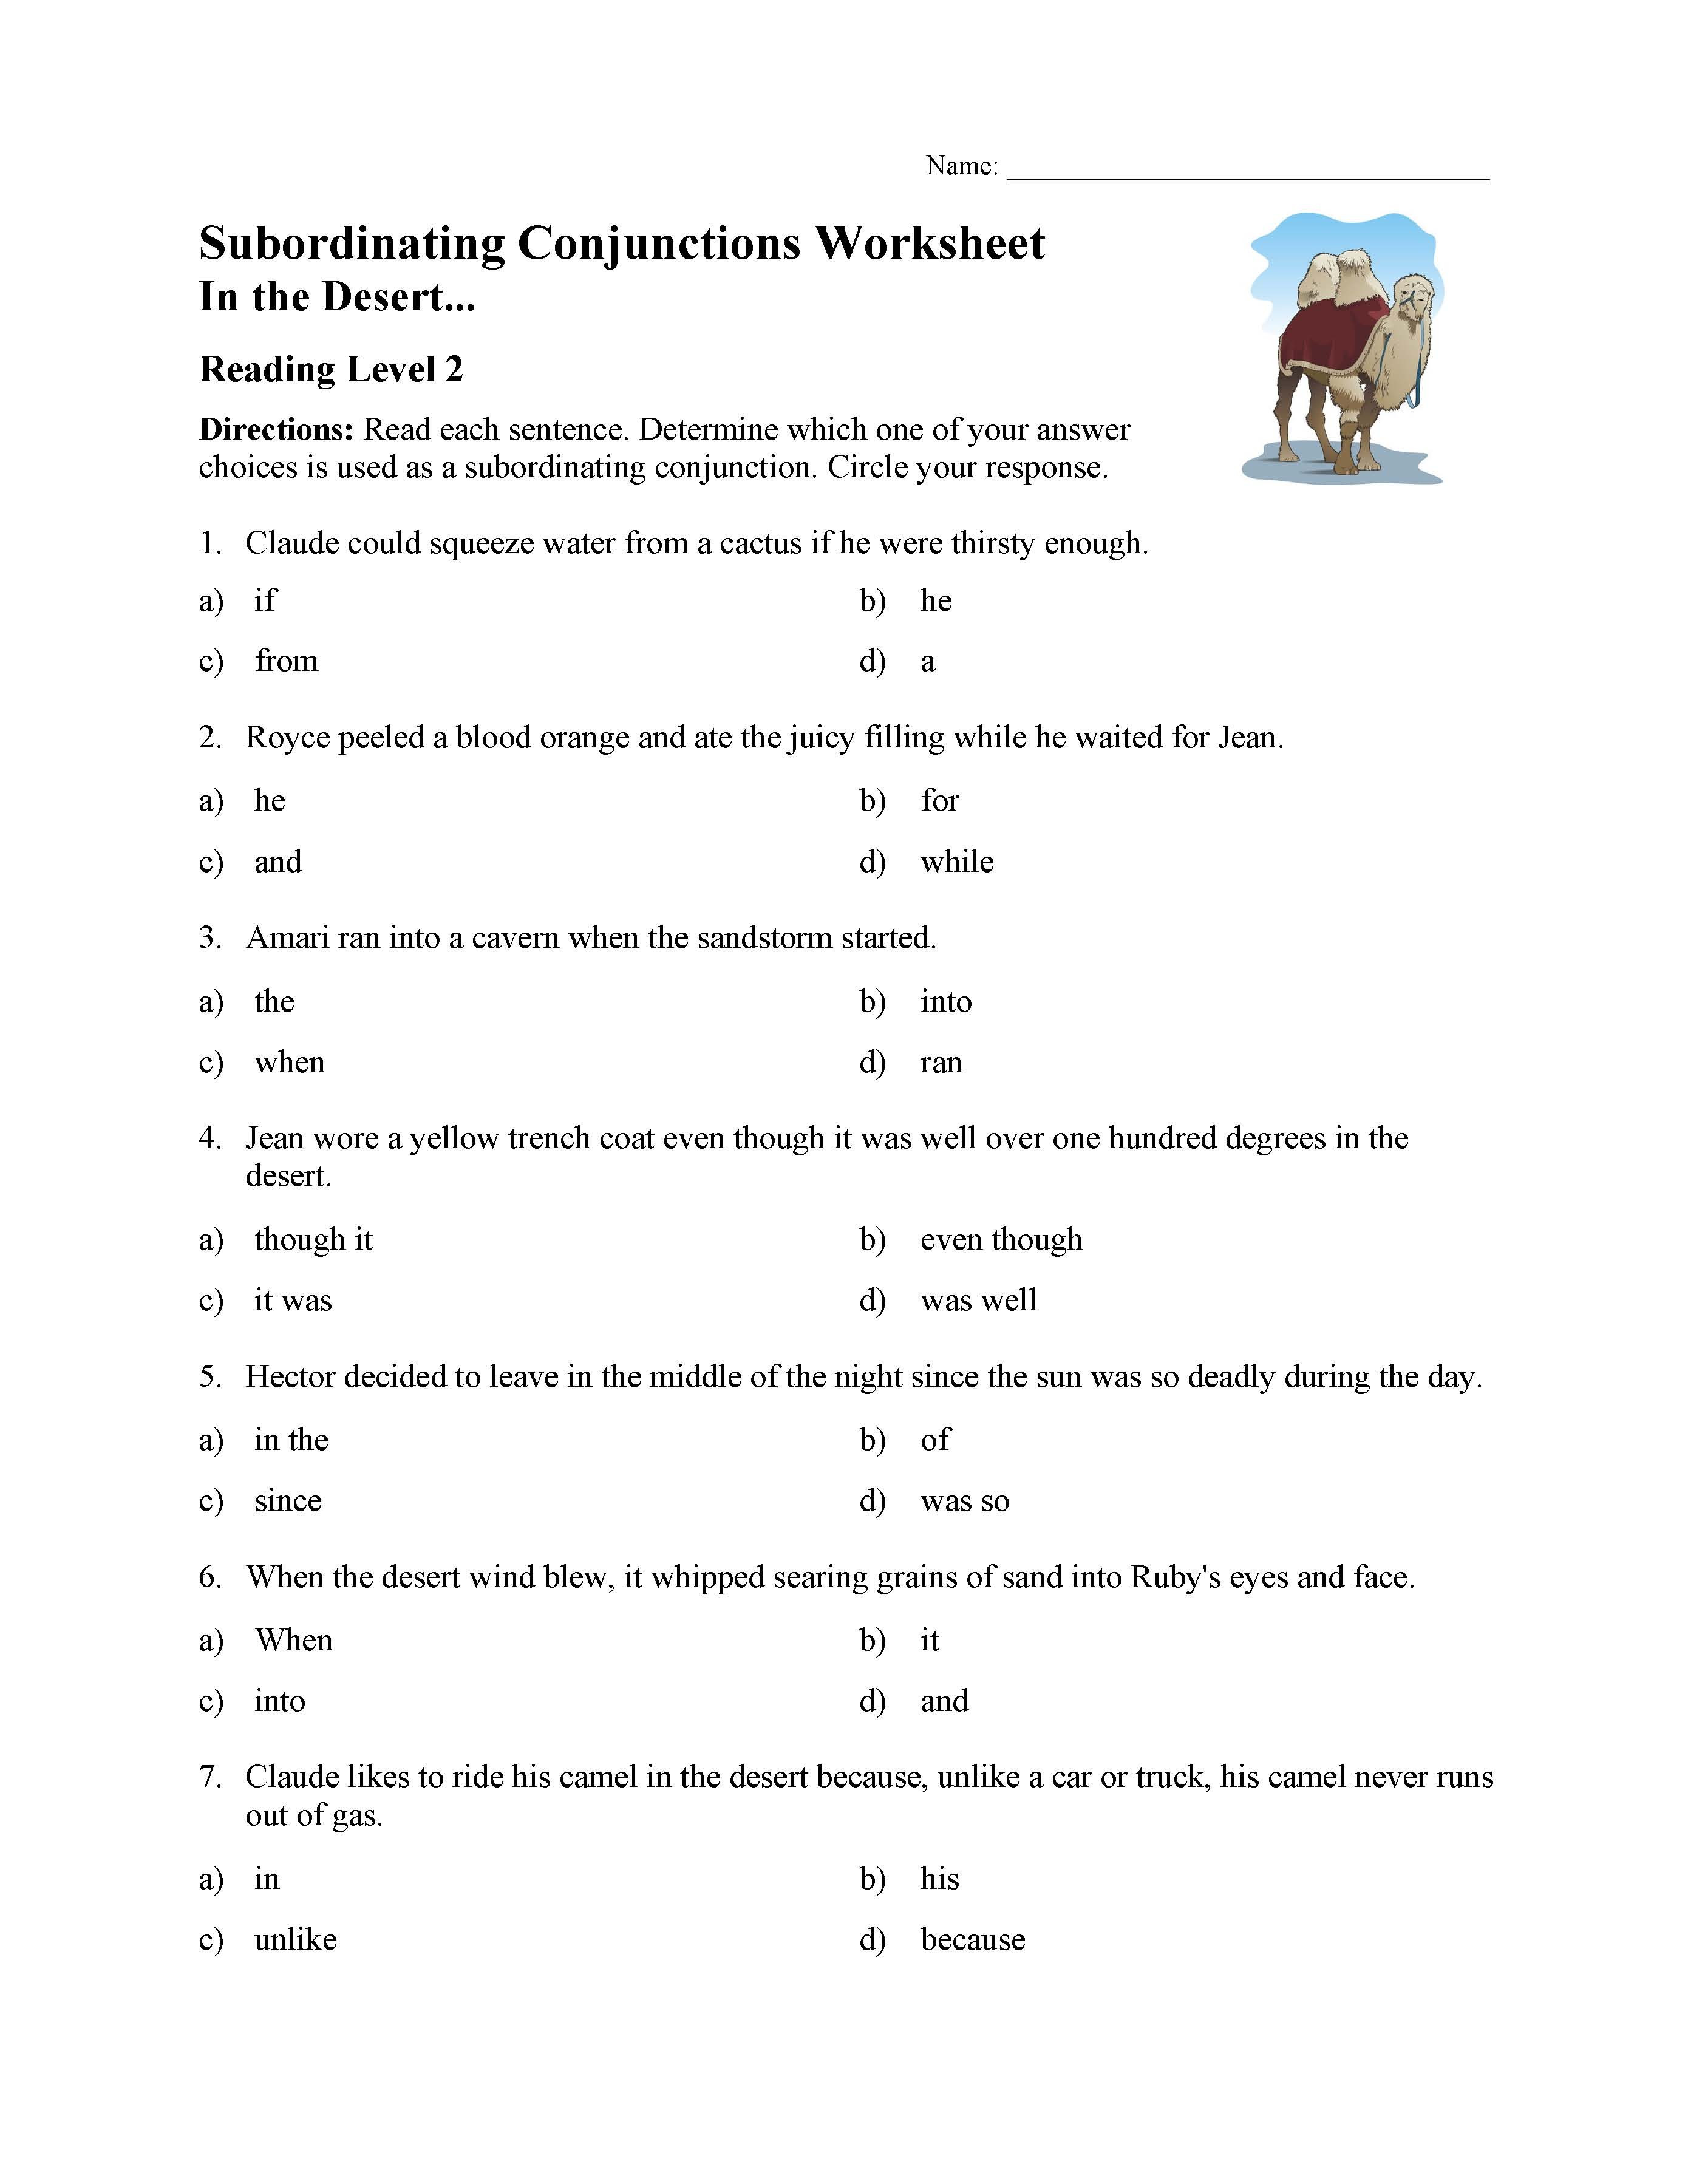 Conjunction Worksheets 6th Grade Subordinating Conjunctions Worksheet Reading Level 2